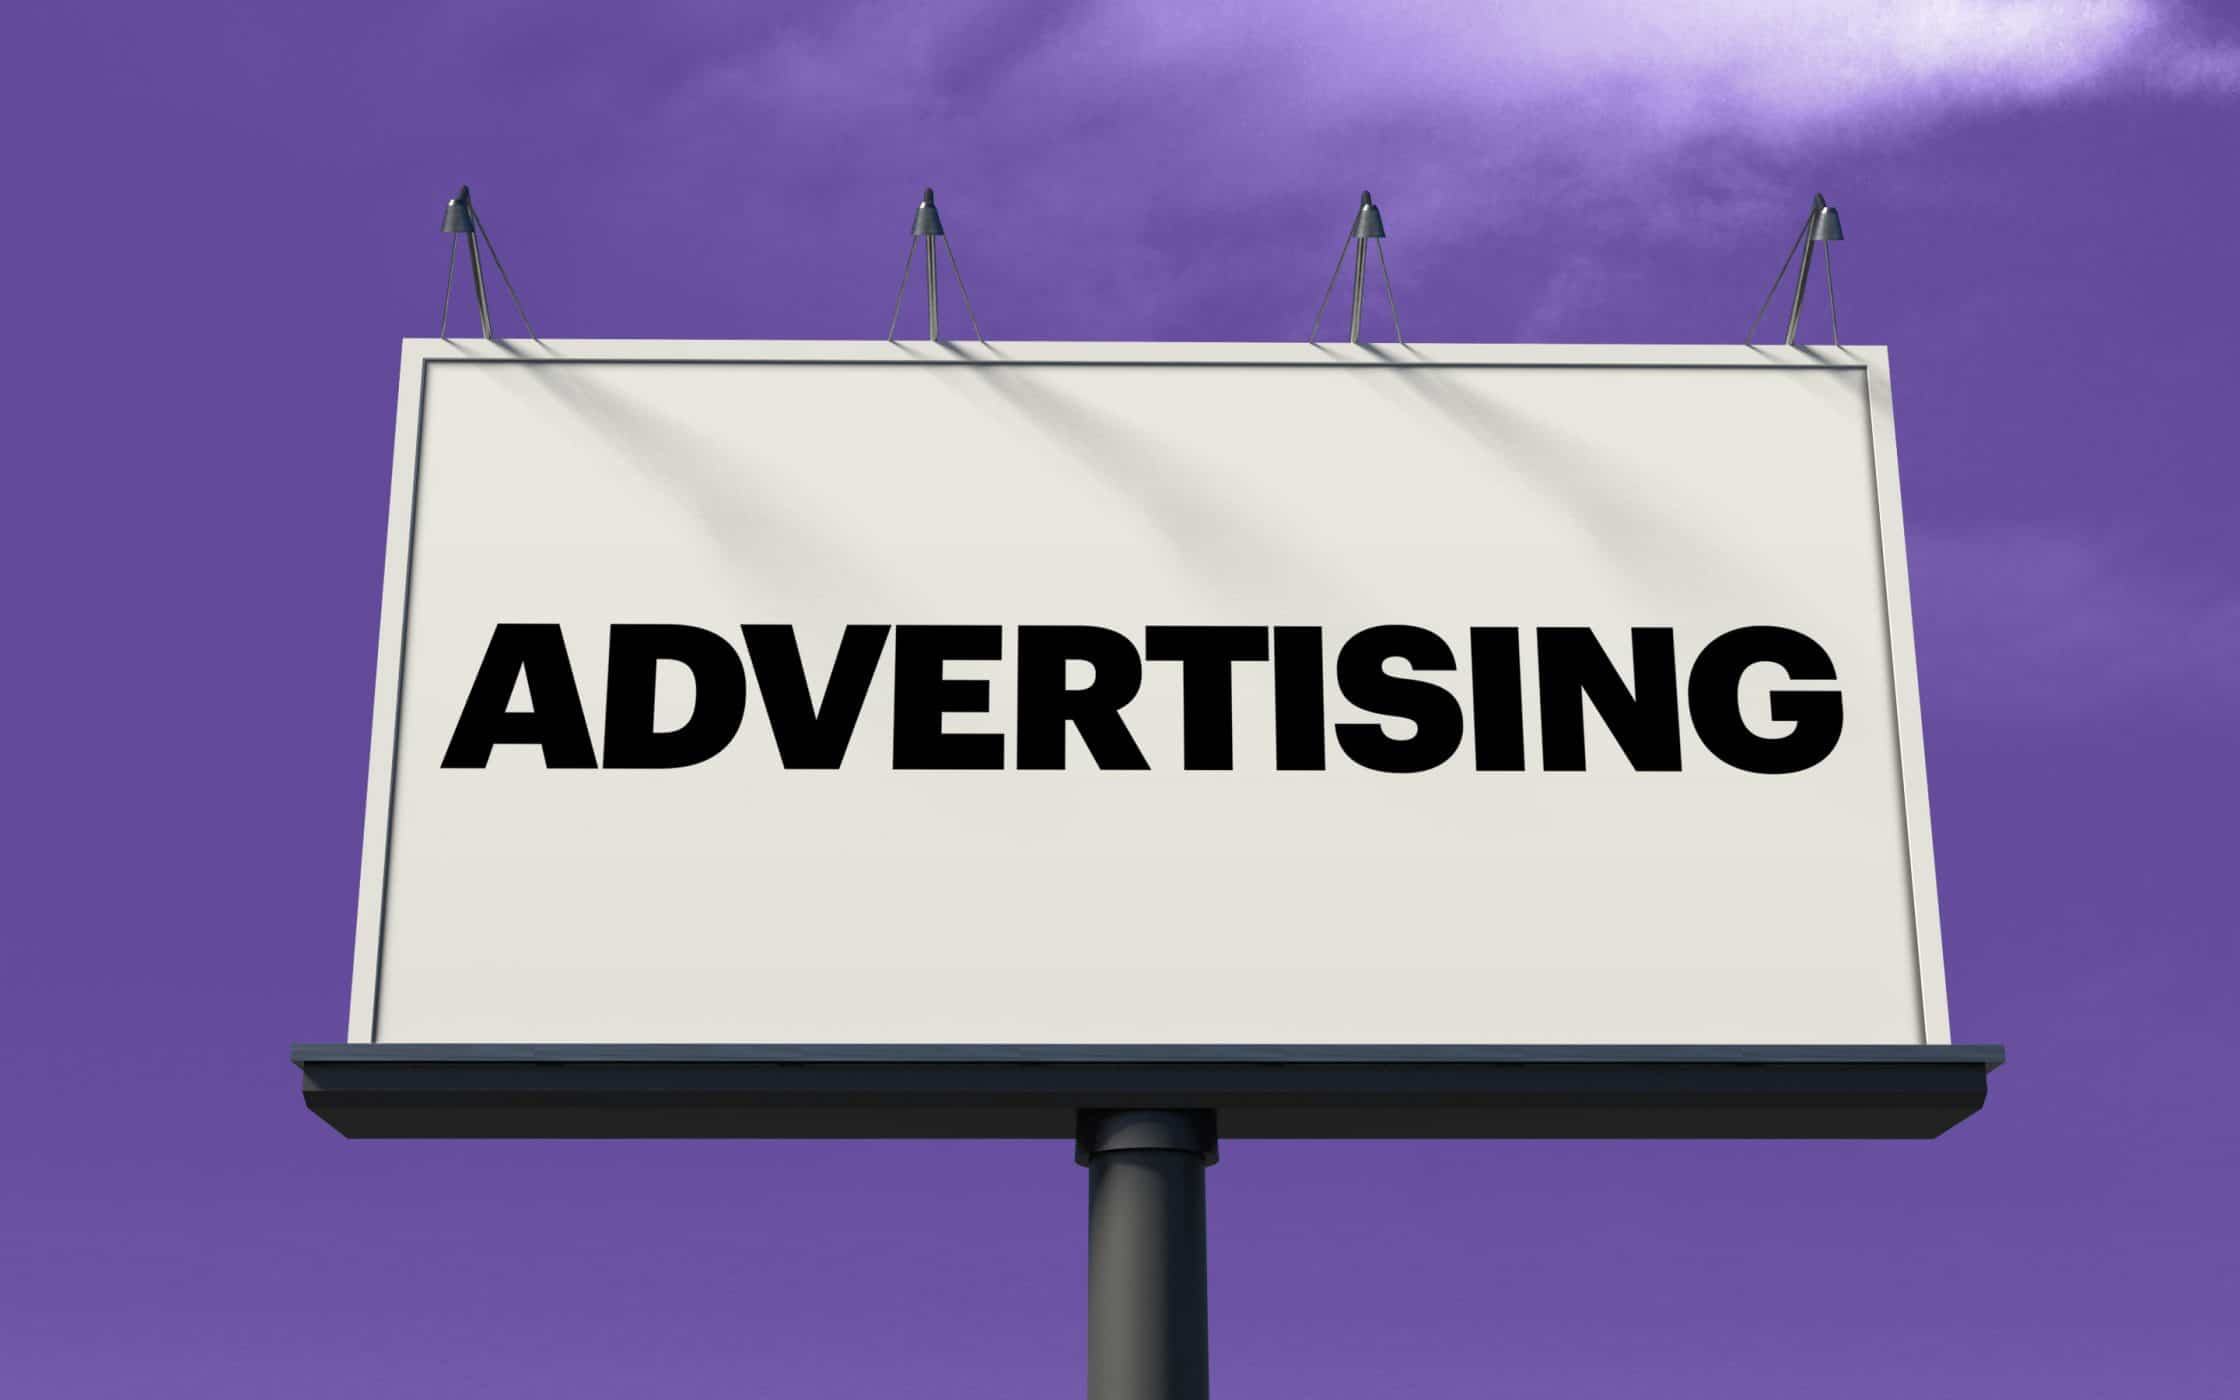 A Brief History To The Ups And Downs Of Advertising